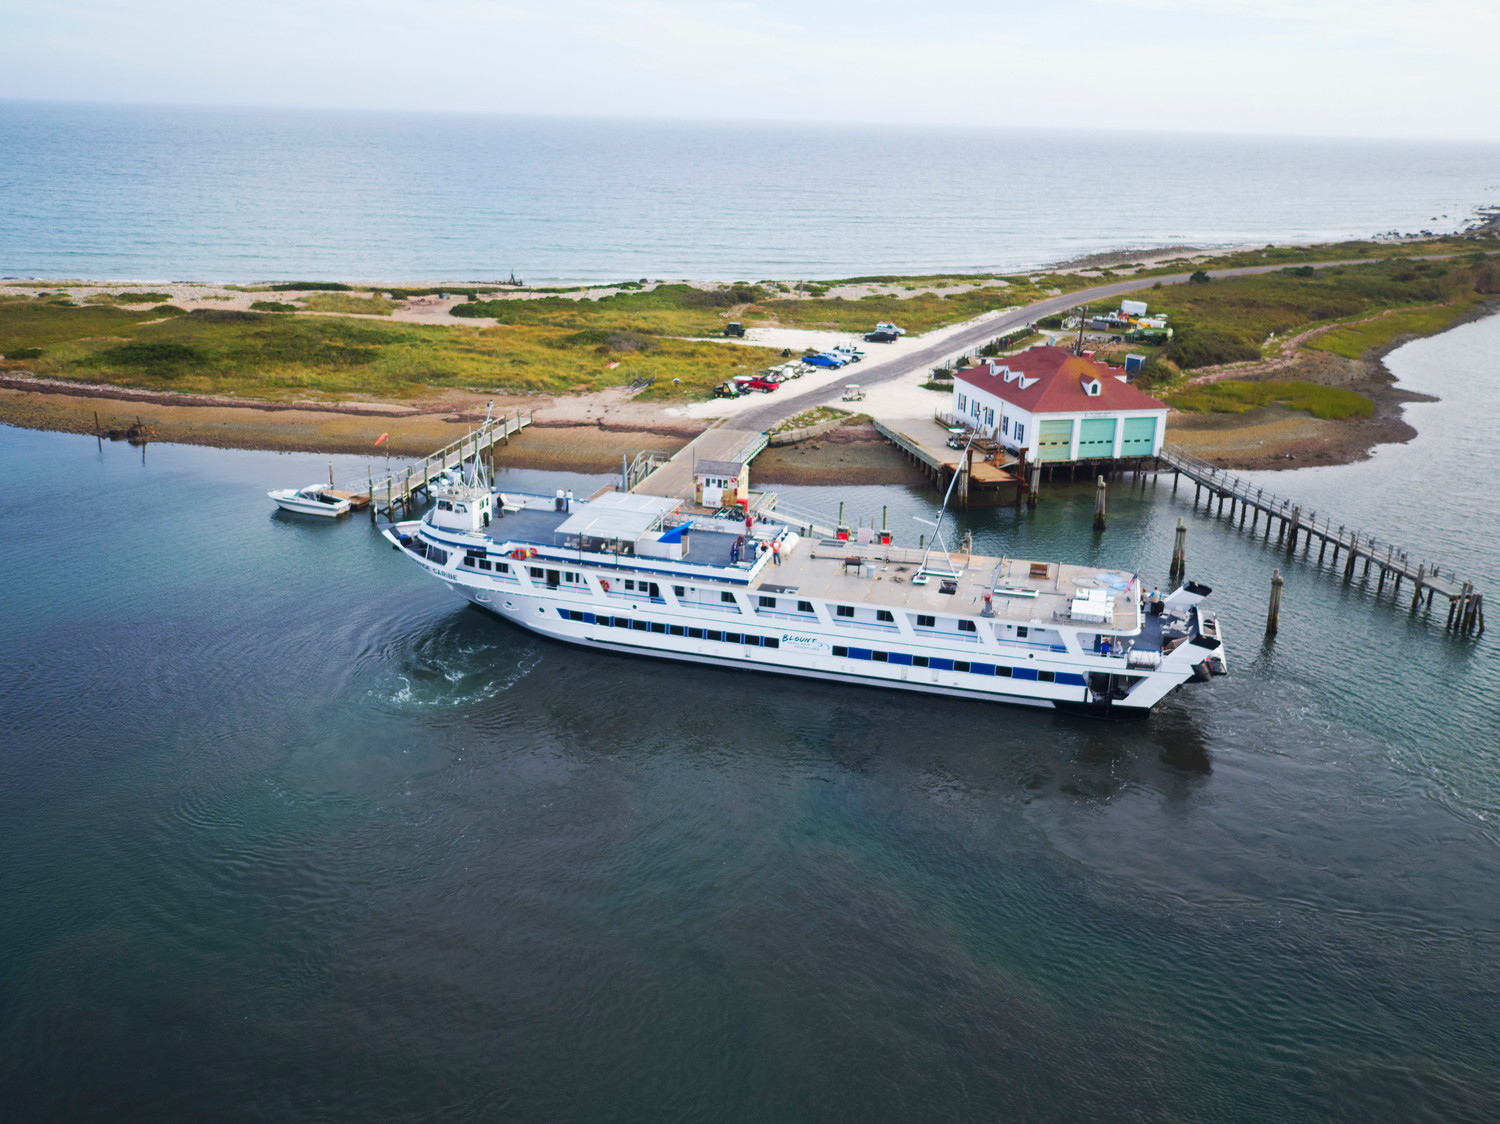 Find both international and domestic destinations on Blount Small Ship Adventures' itineraries